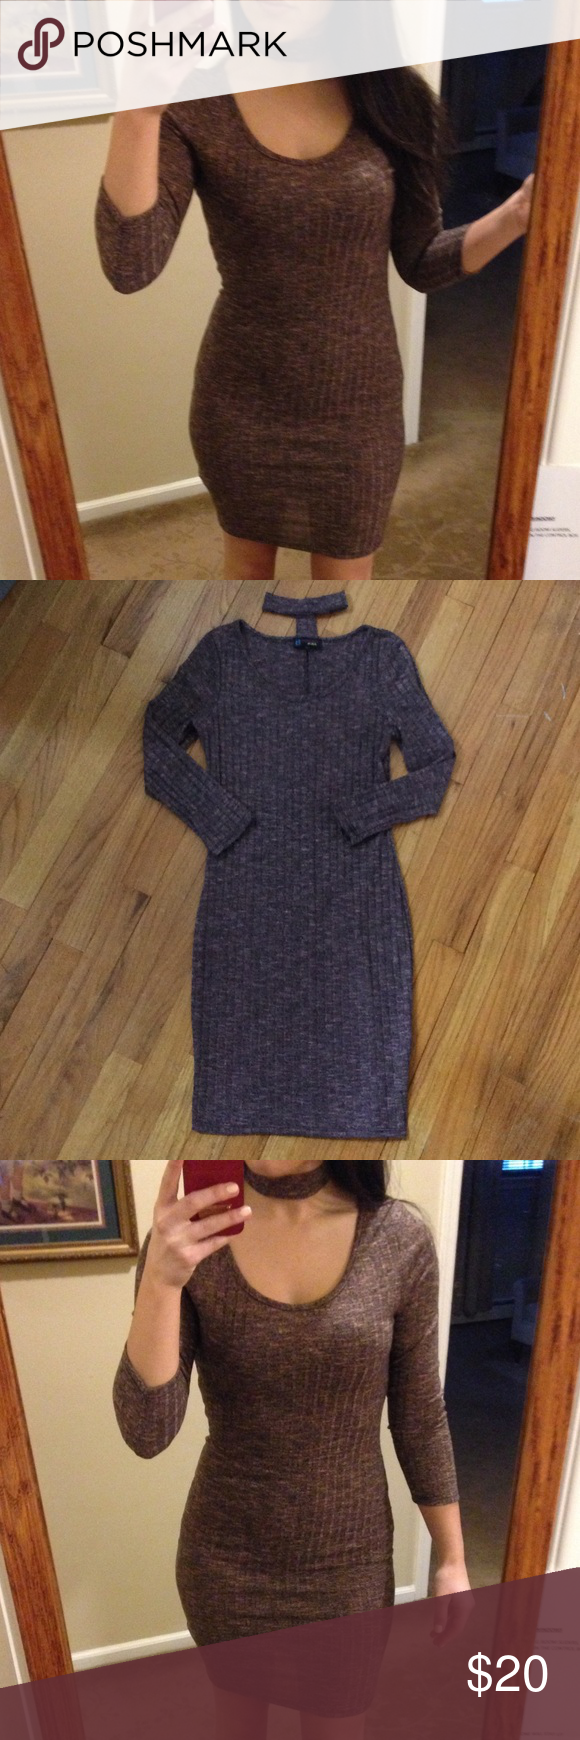 Bodycon choker dress Size medium bodycon dress with attached choker. Light sweater material. Worn once for photos :) brand new condition Dresses Mini